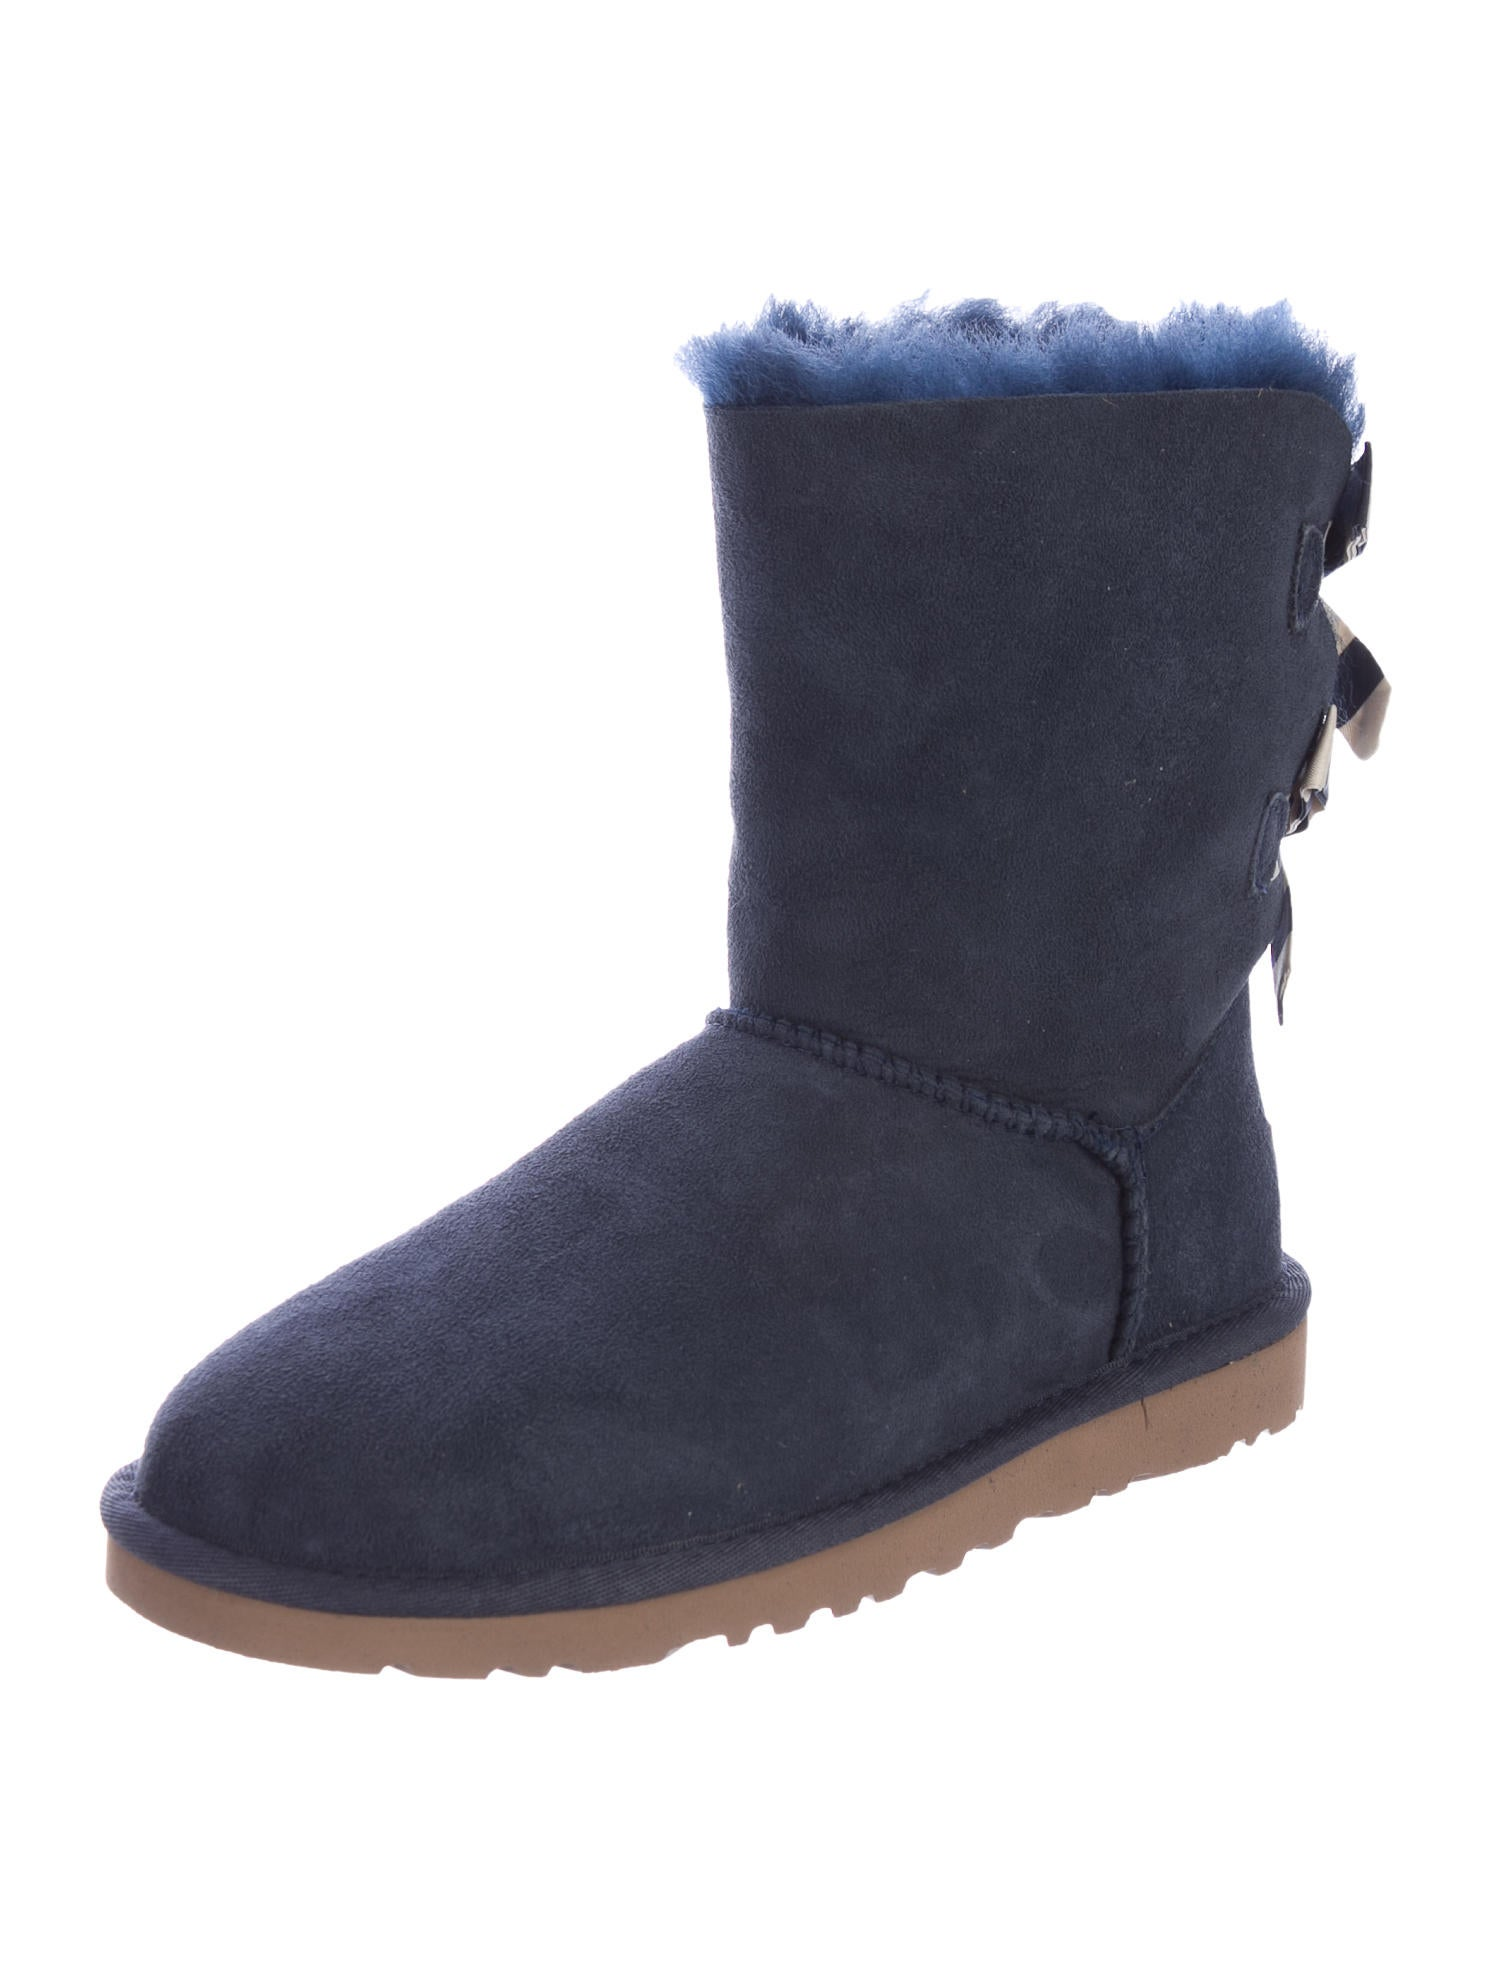 ugg australia suede shearling boots w tags shoes